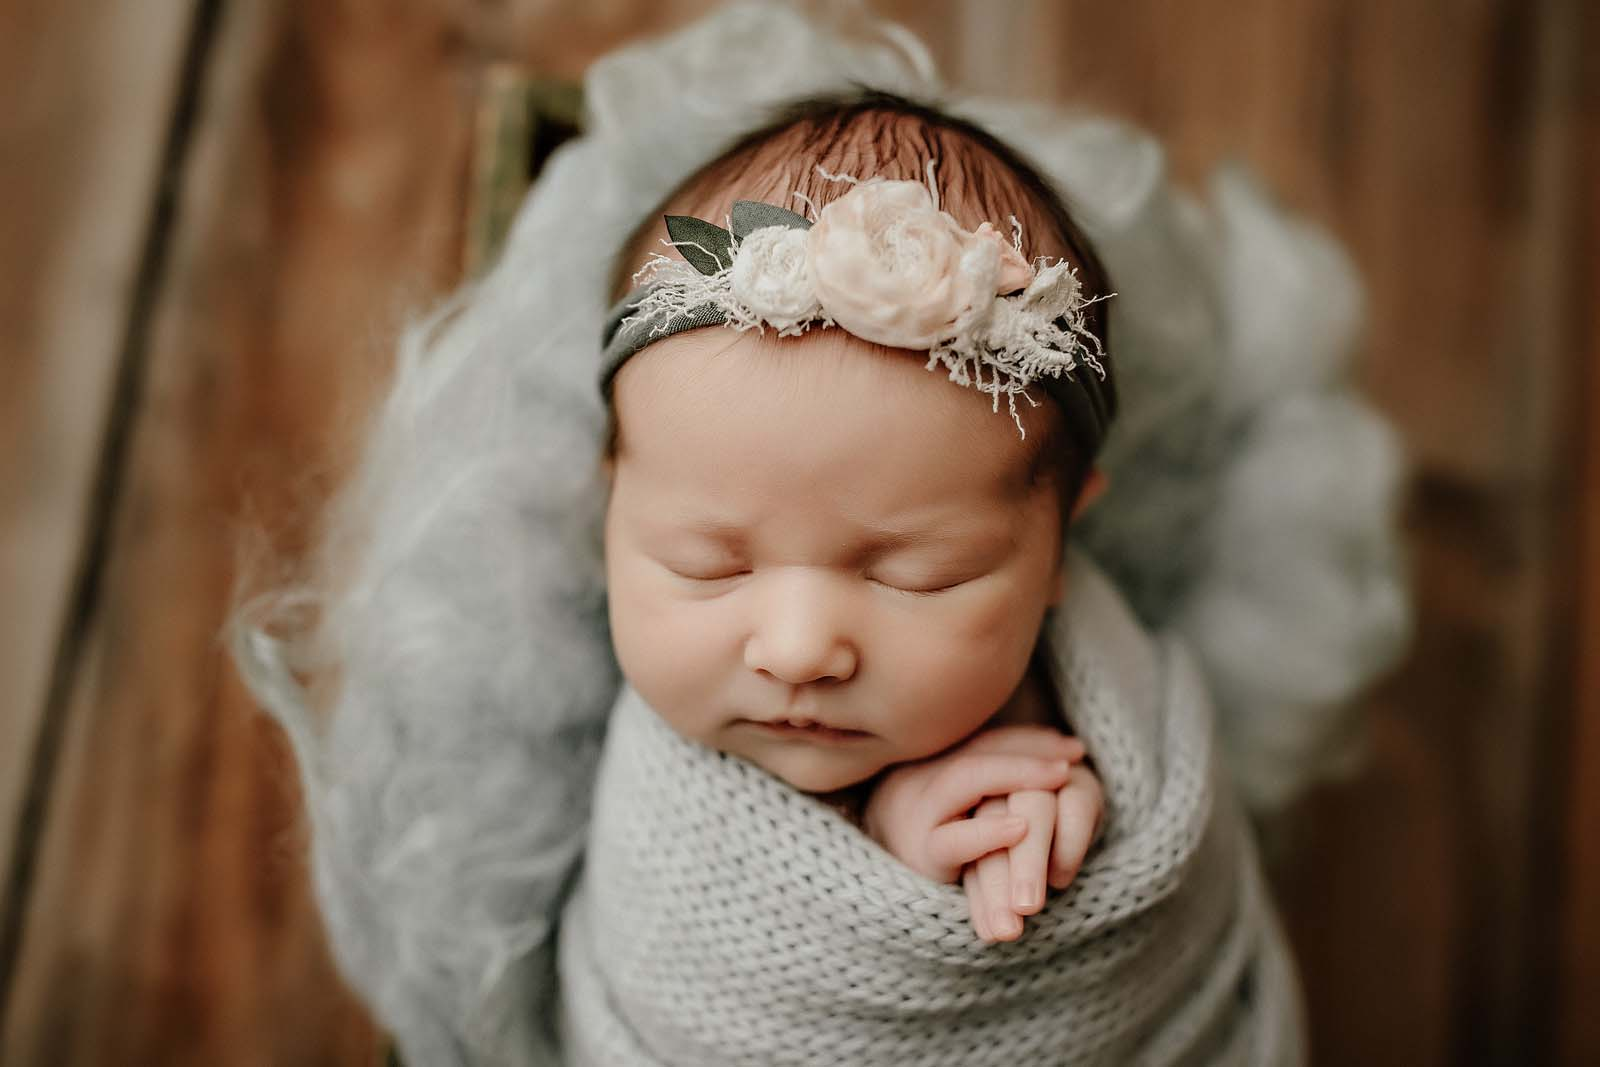 Newborn photography studio essentials